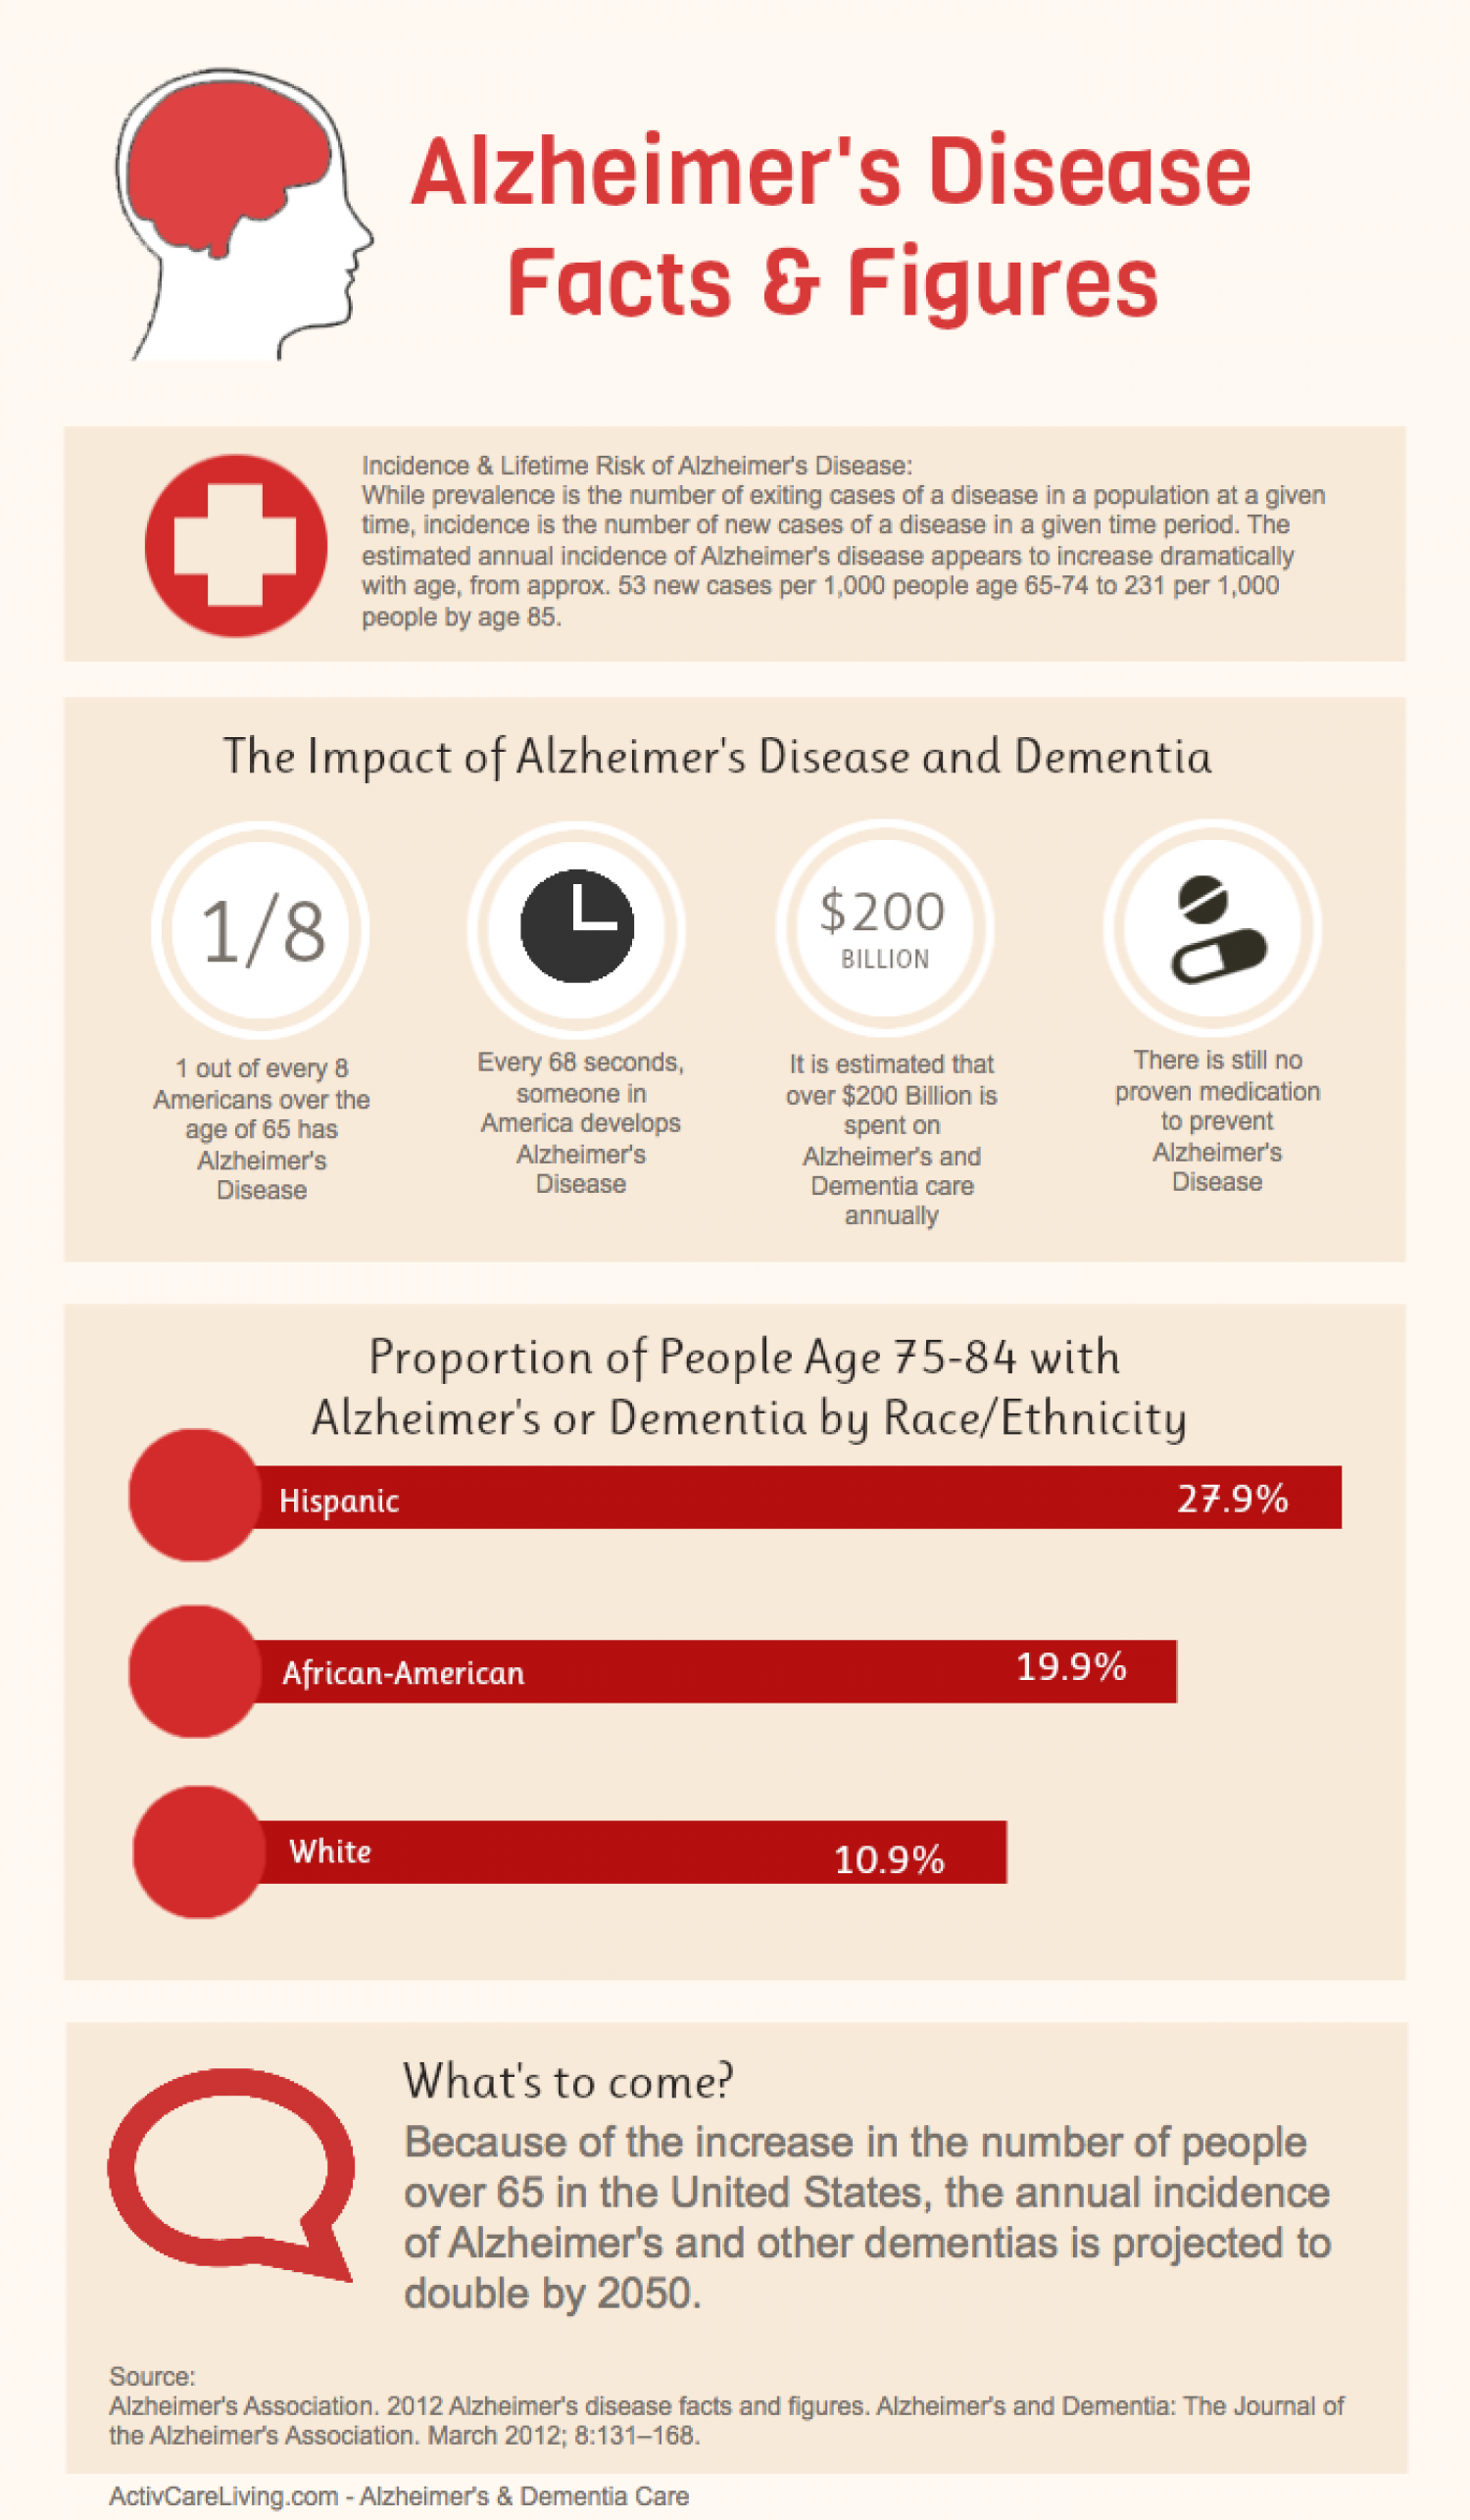 Alzheimer's Disease Facts & Figures Infographic